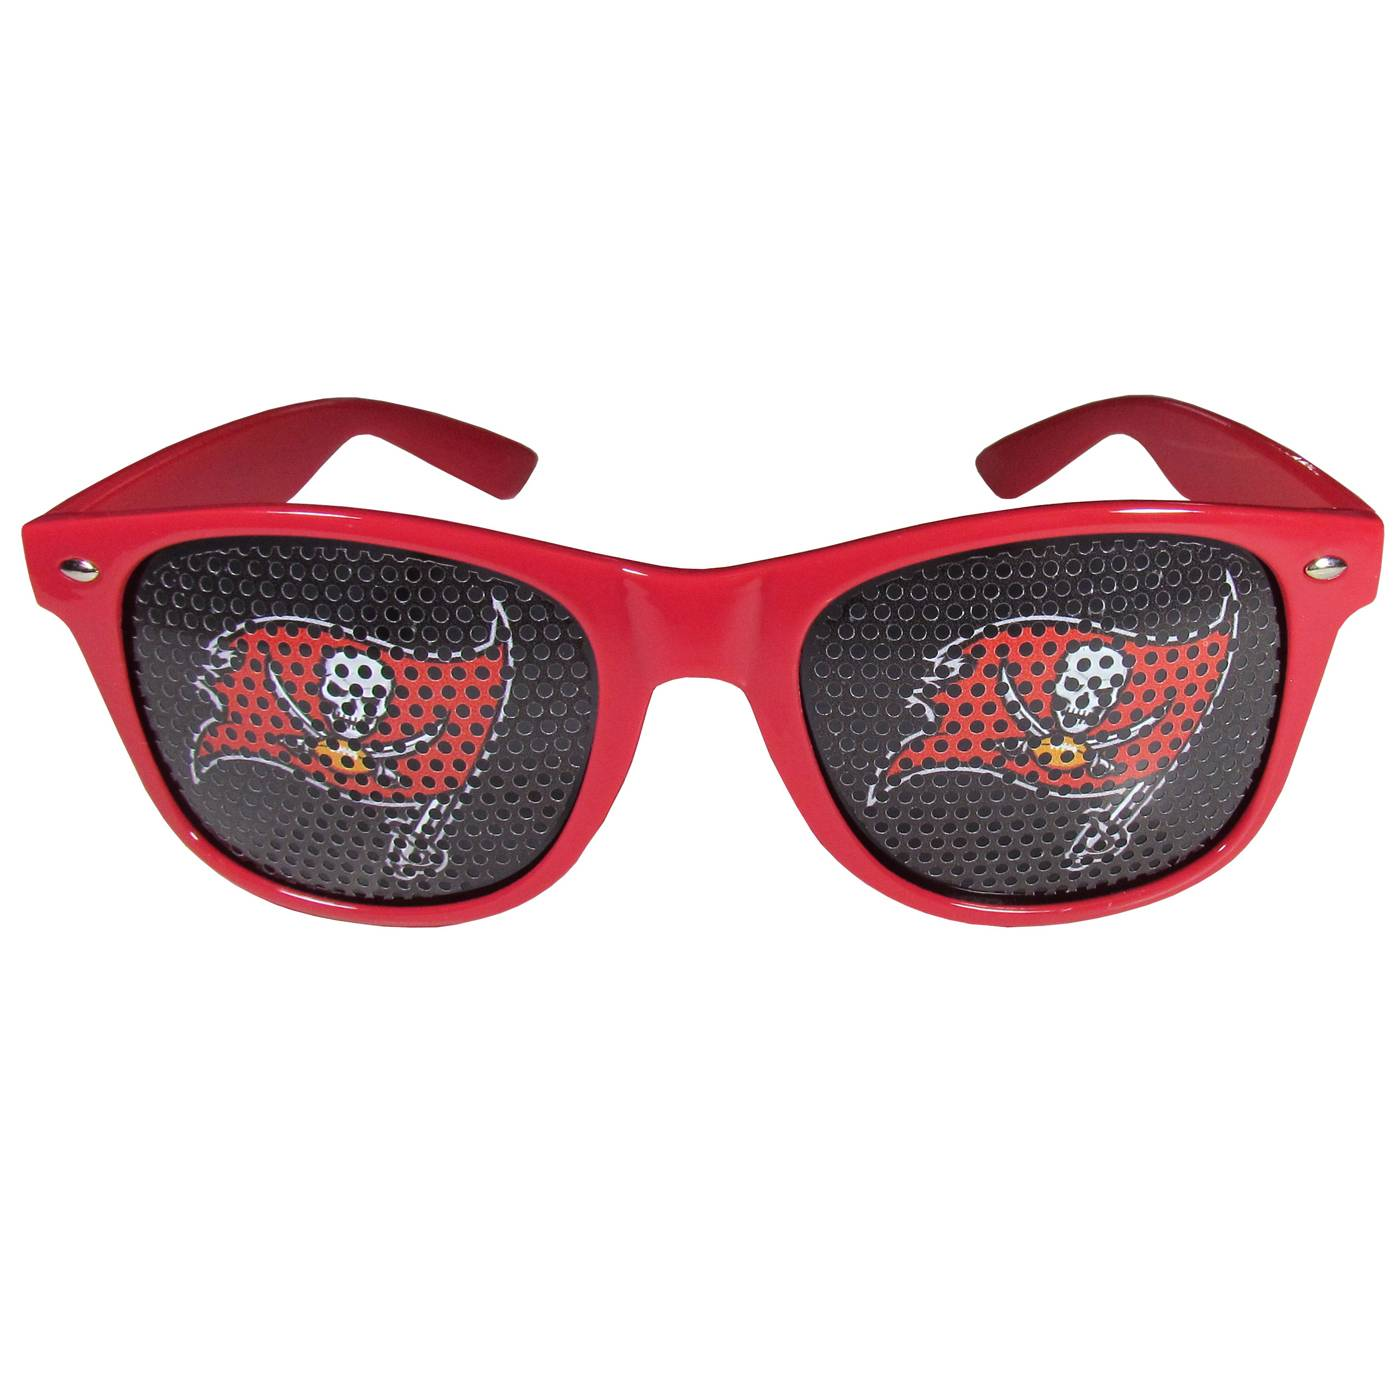 Tampa Bay Buccaneers Game Day Shades